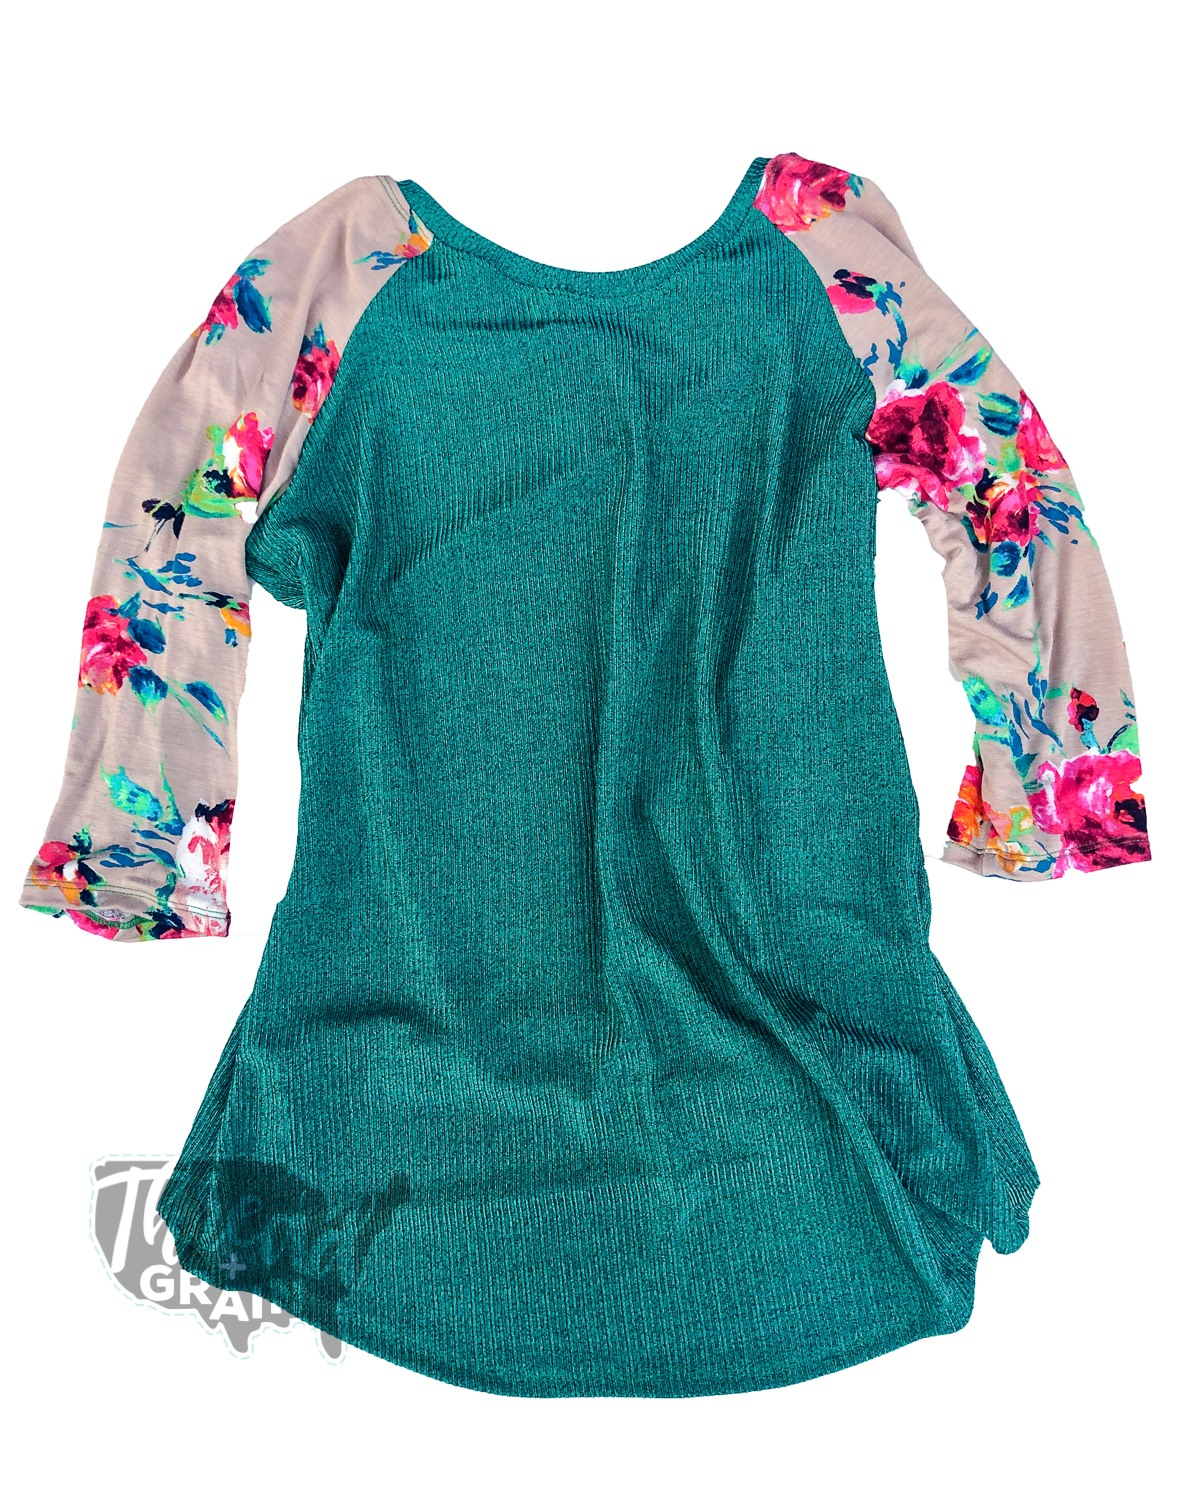 Metallic Green + Floral | Custom Sewn Women's Raglan